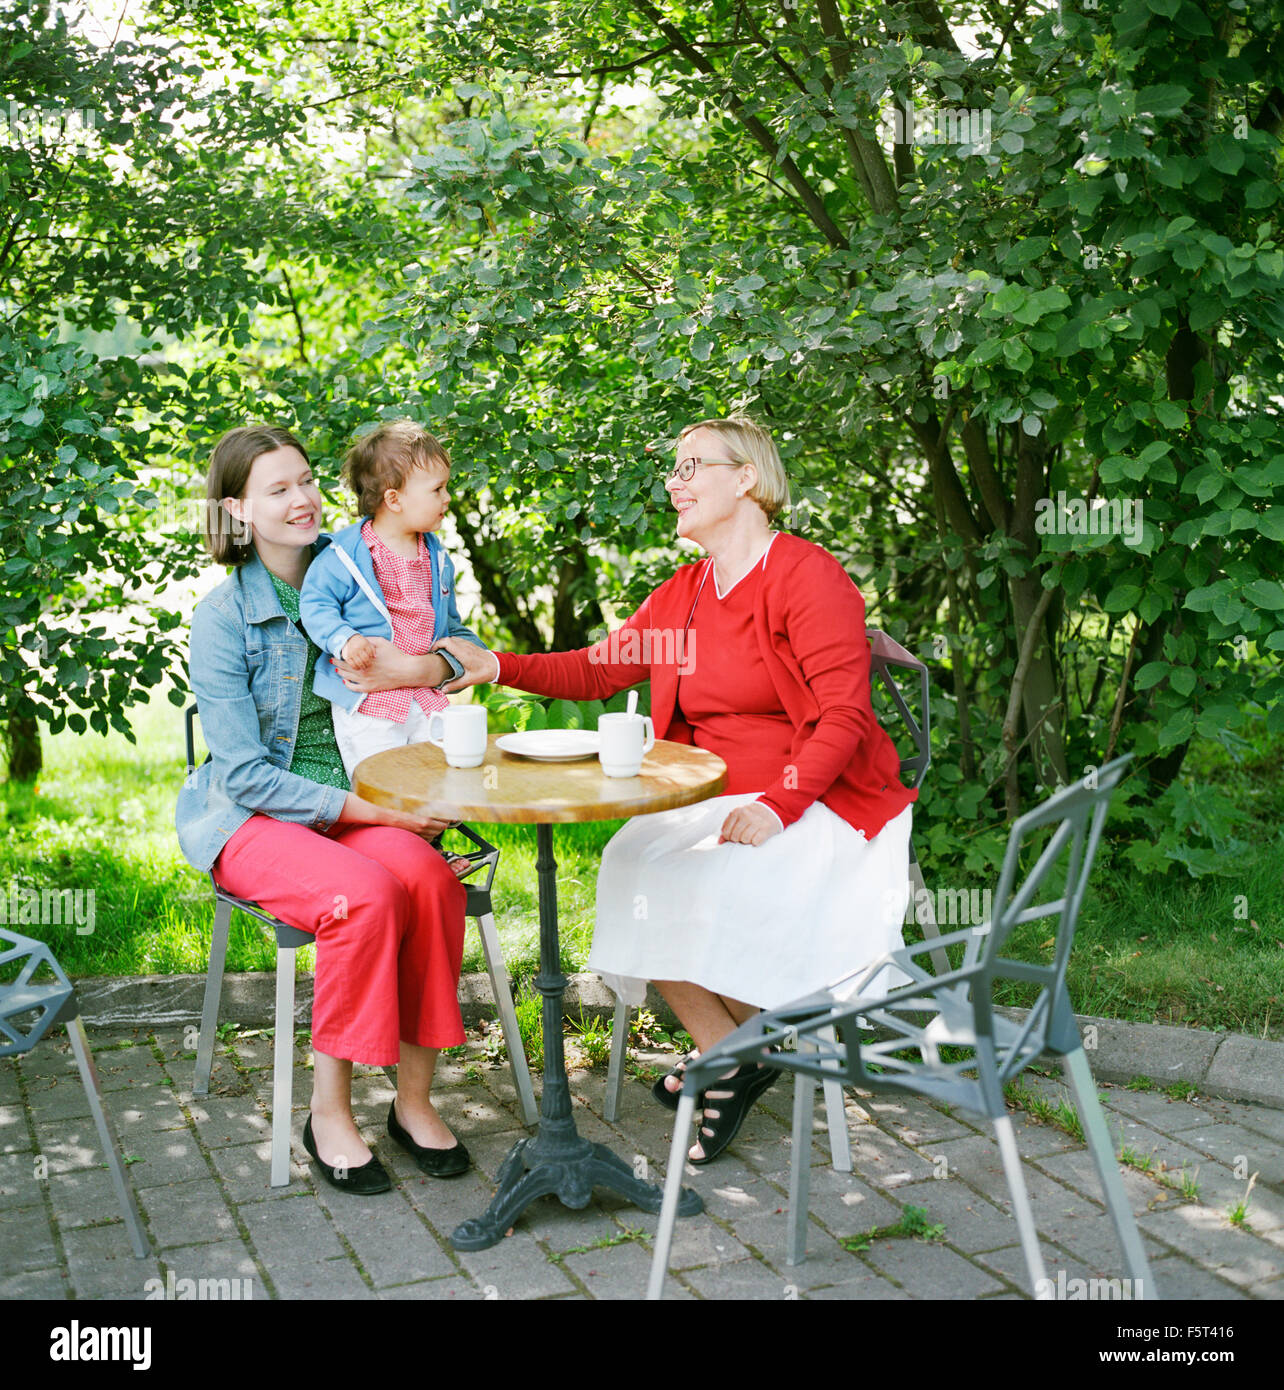 Finland, Helsinki, Uusimaa, Portrait of mother, grandmother and child (2-3) in sidewalk cafe - Stock Image